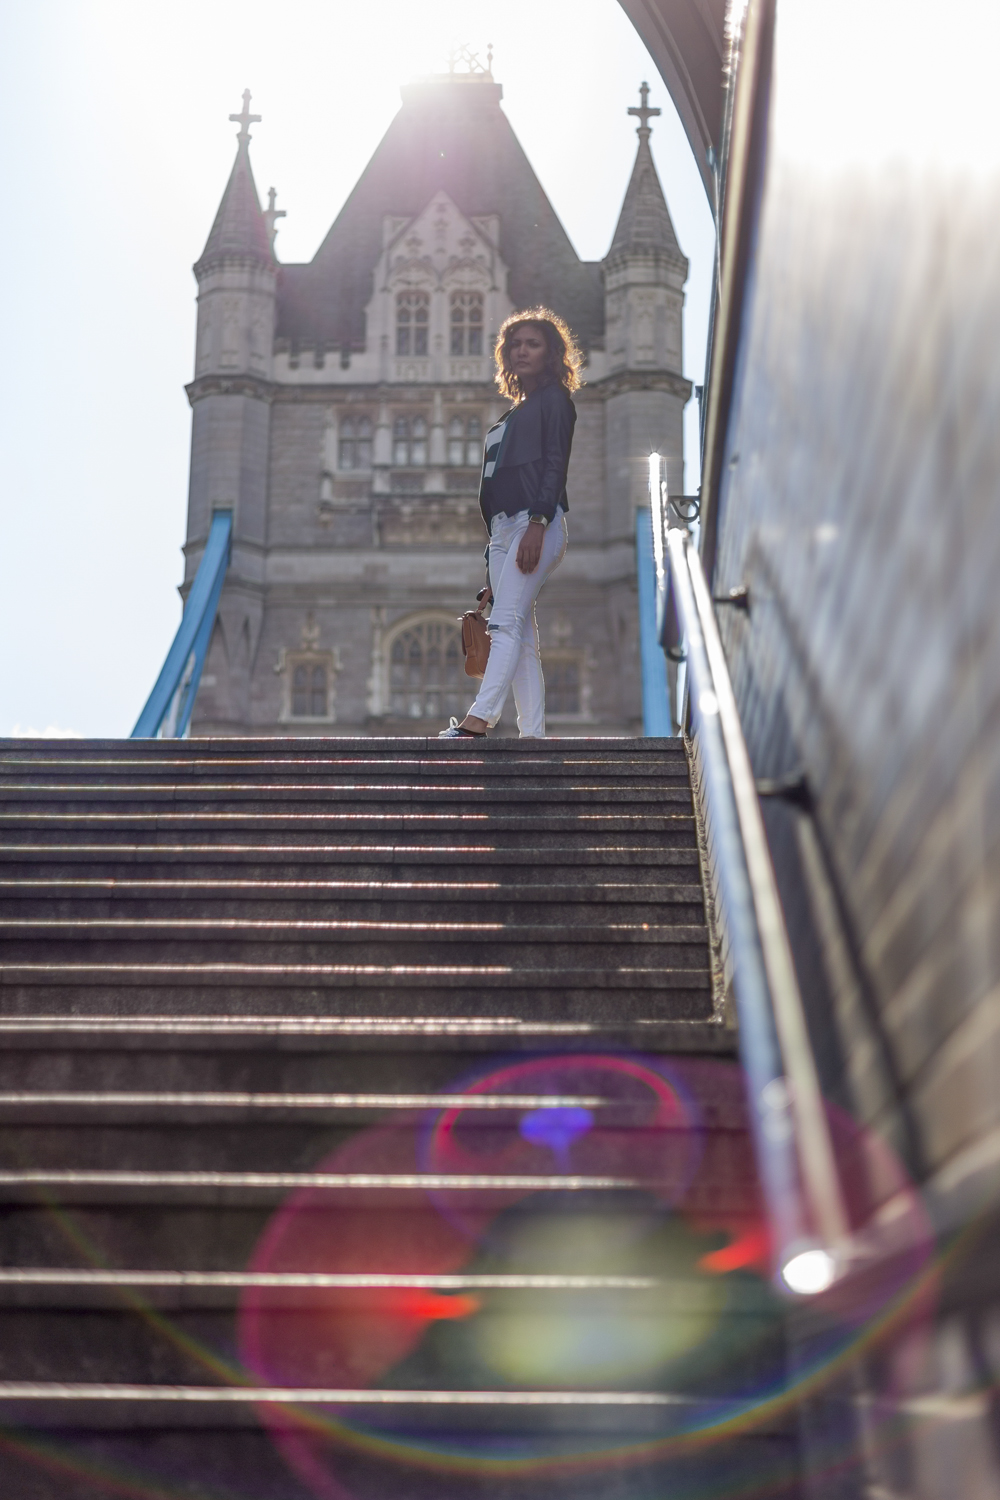 Amanda at Tower Bridge  Canon 6D, Canon 50mm f/1.4 (iso50, f/1.8, 1/4000s)